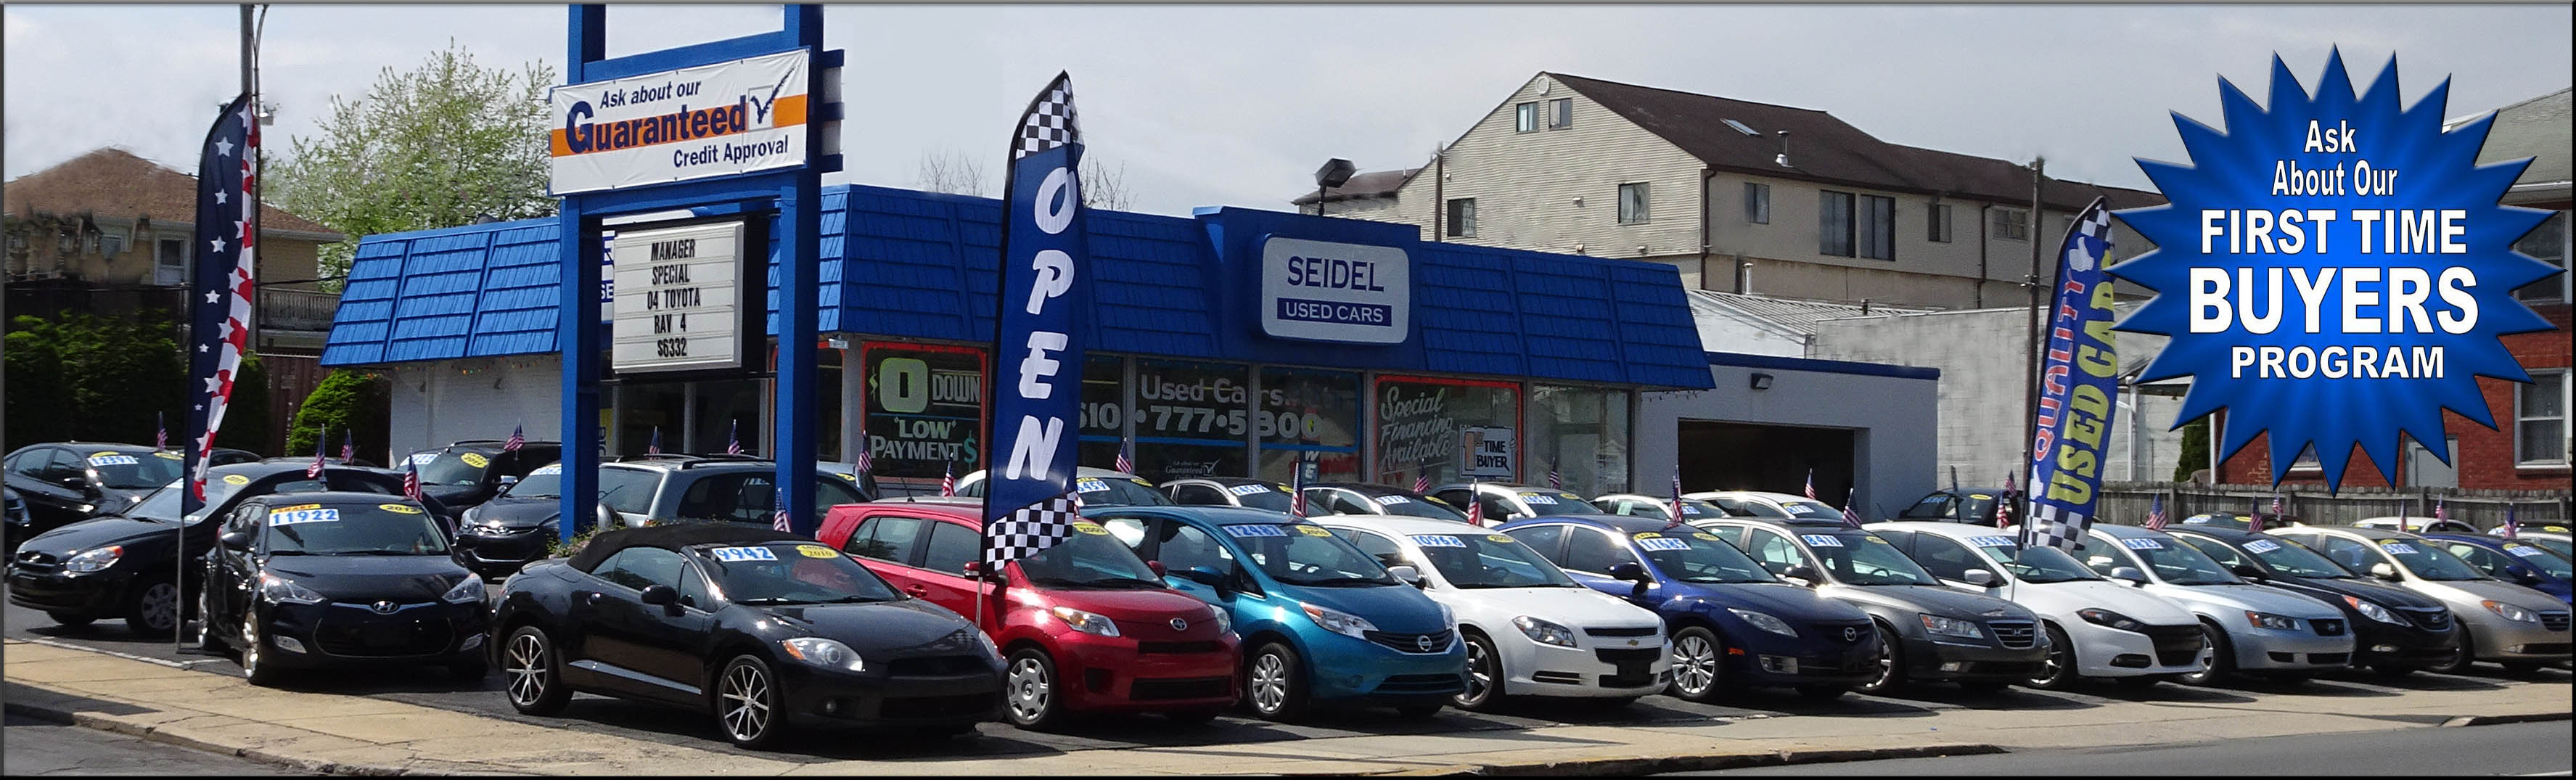 Bad Credit Car Dealerships Near Me >> Lovely Second Hand Car Dealers Near Me | used cars